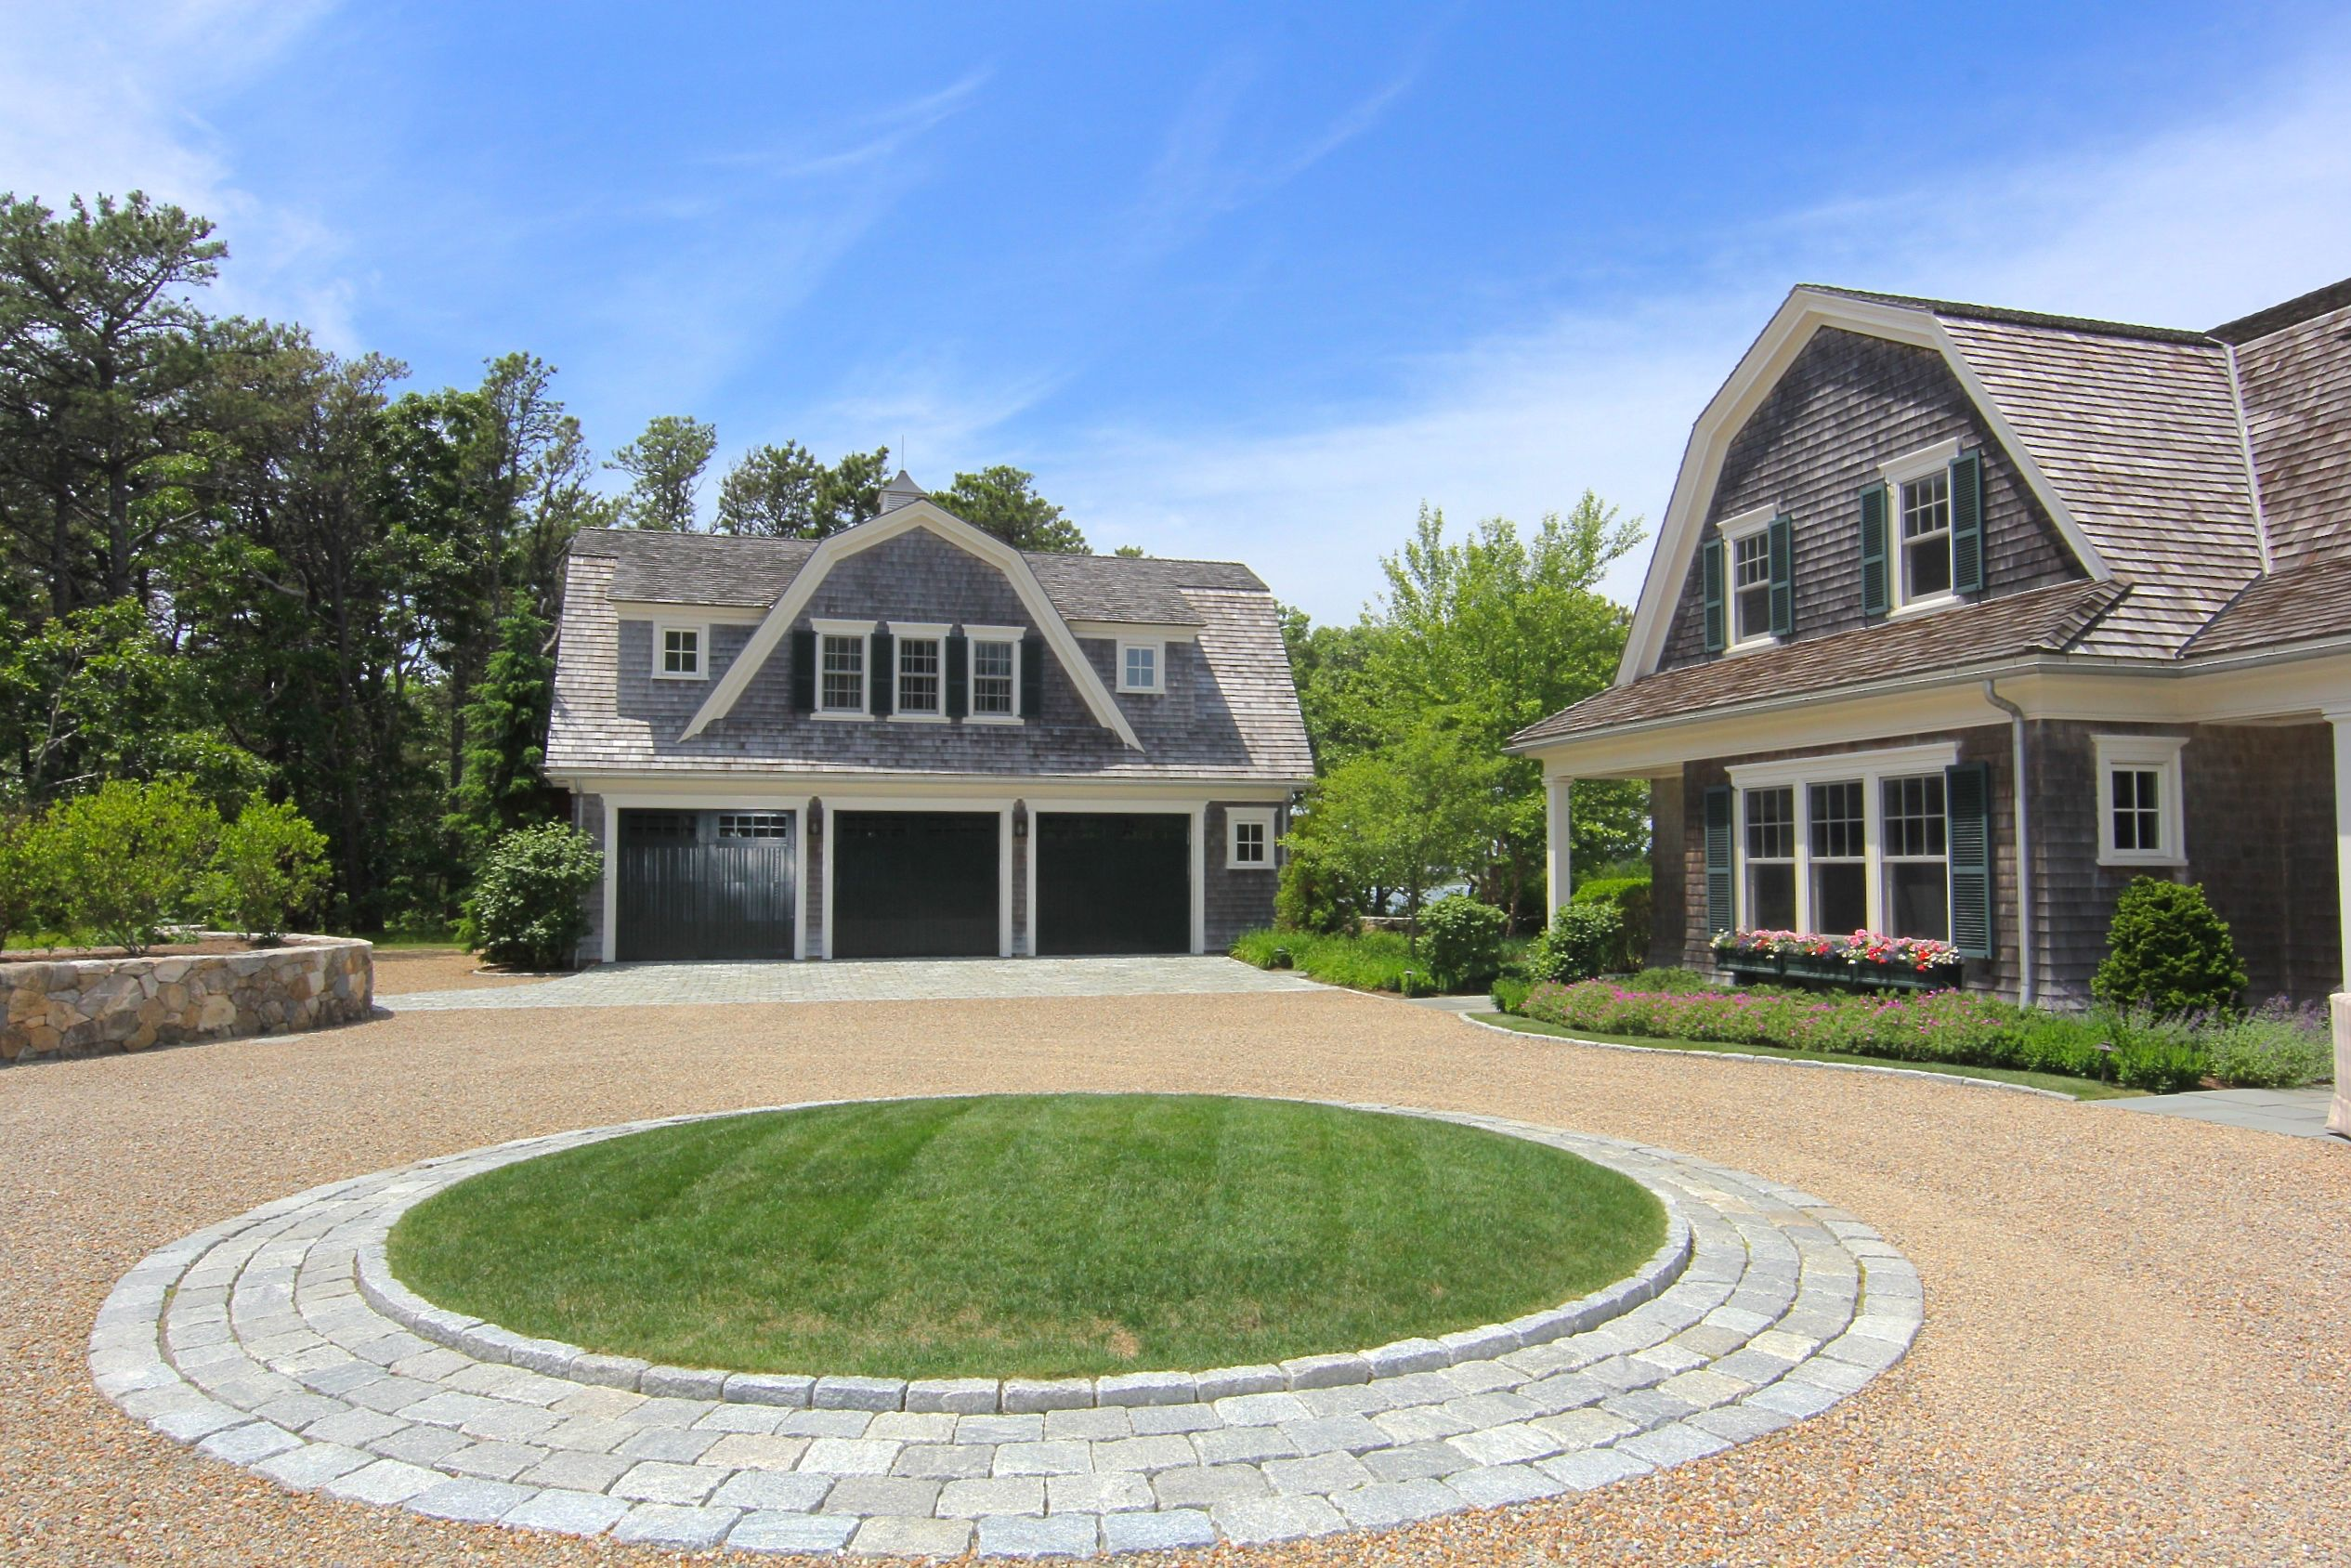 Additional photo for property listing at 96 Beach Road 96 Beach Road Edgartown, Massachusetts,02539 United States